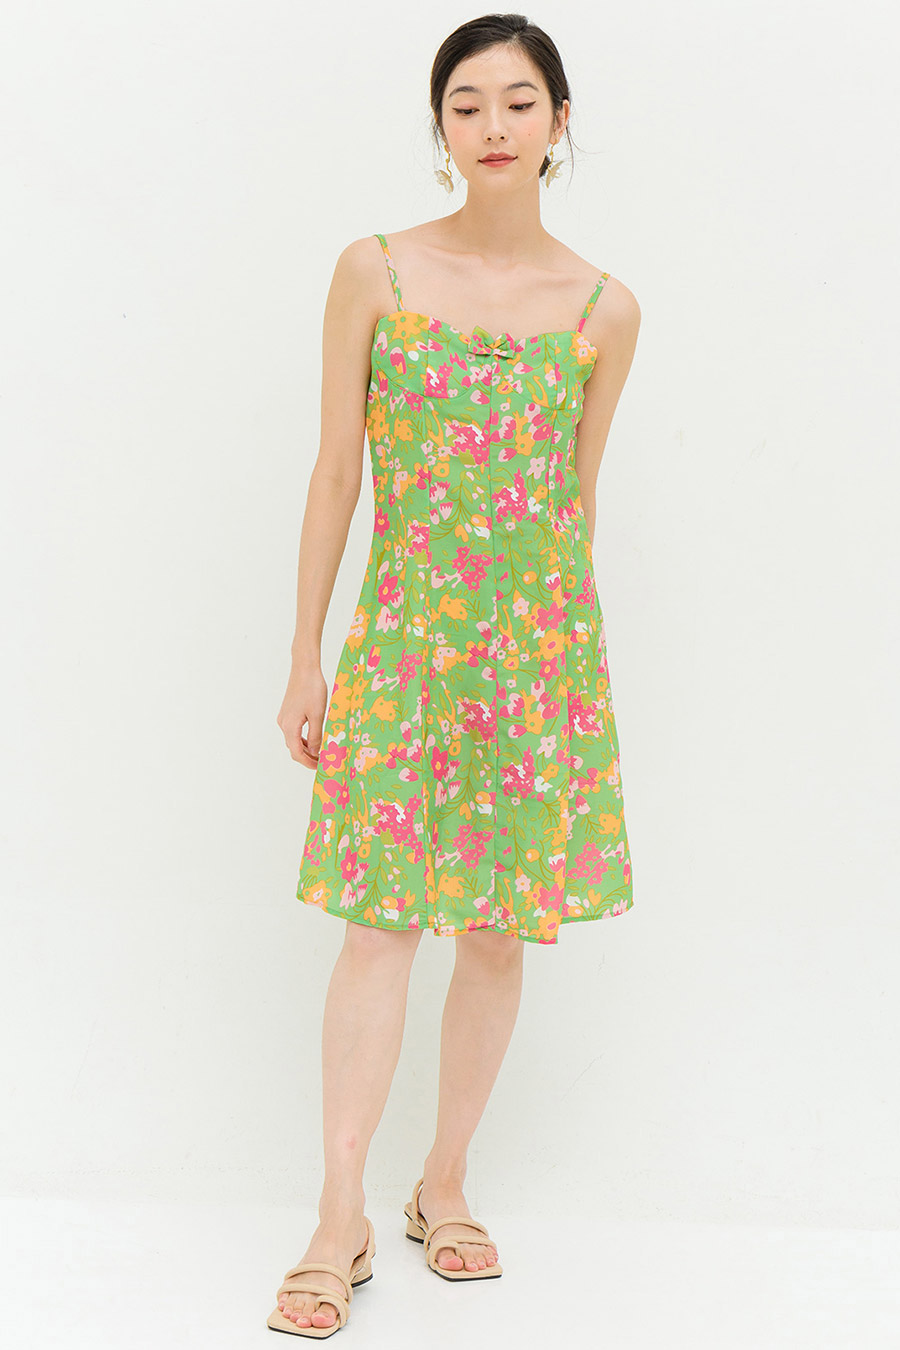 *SALE* CARTER DRESS - PINE FLEUR